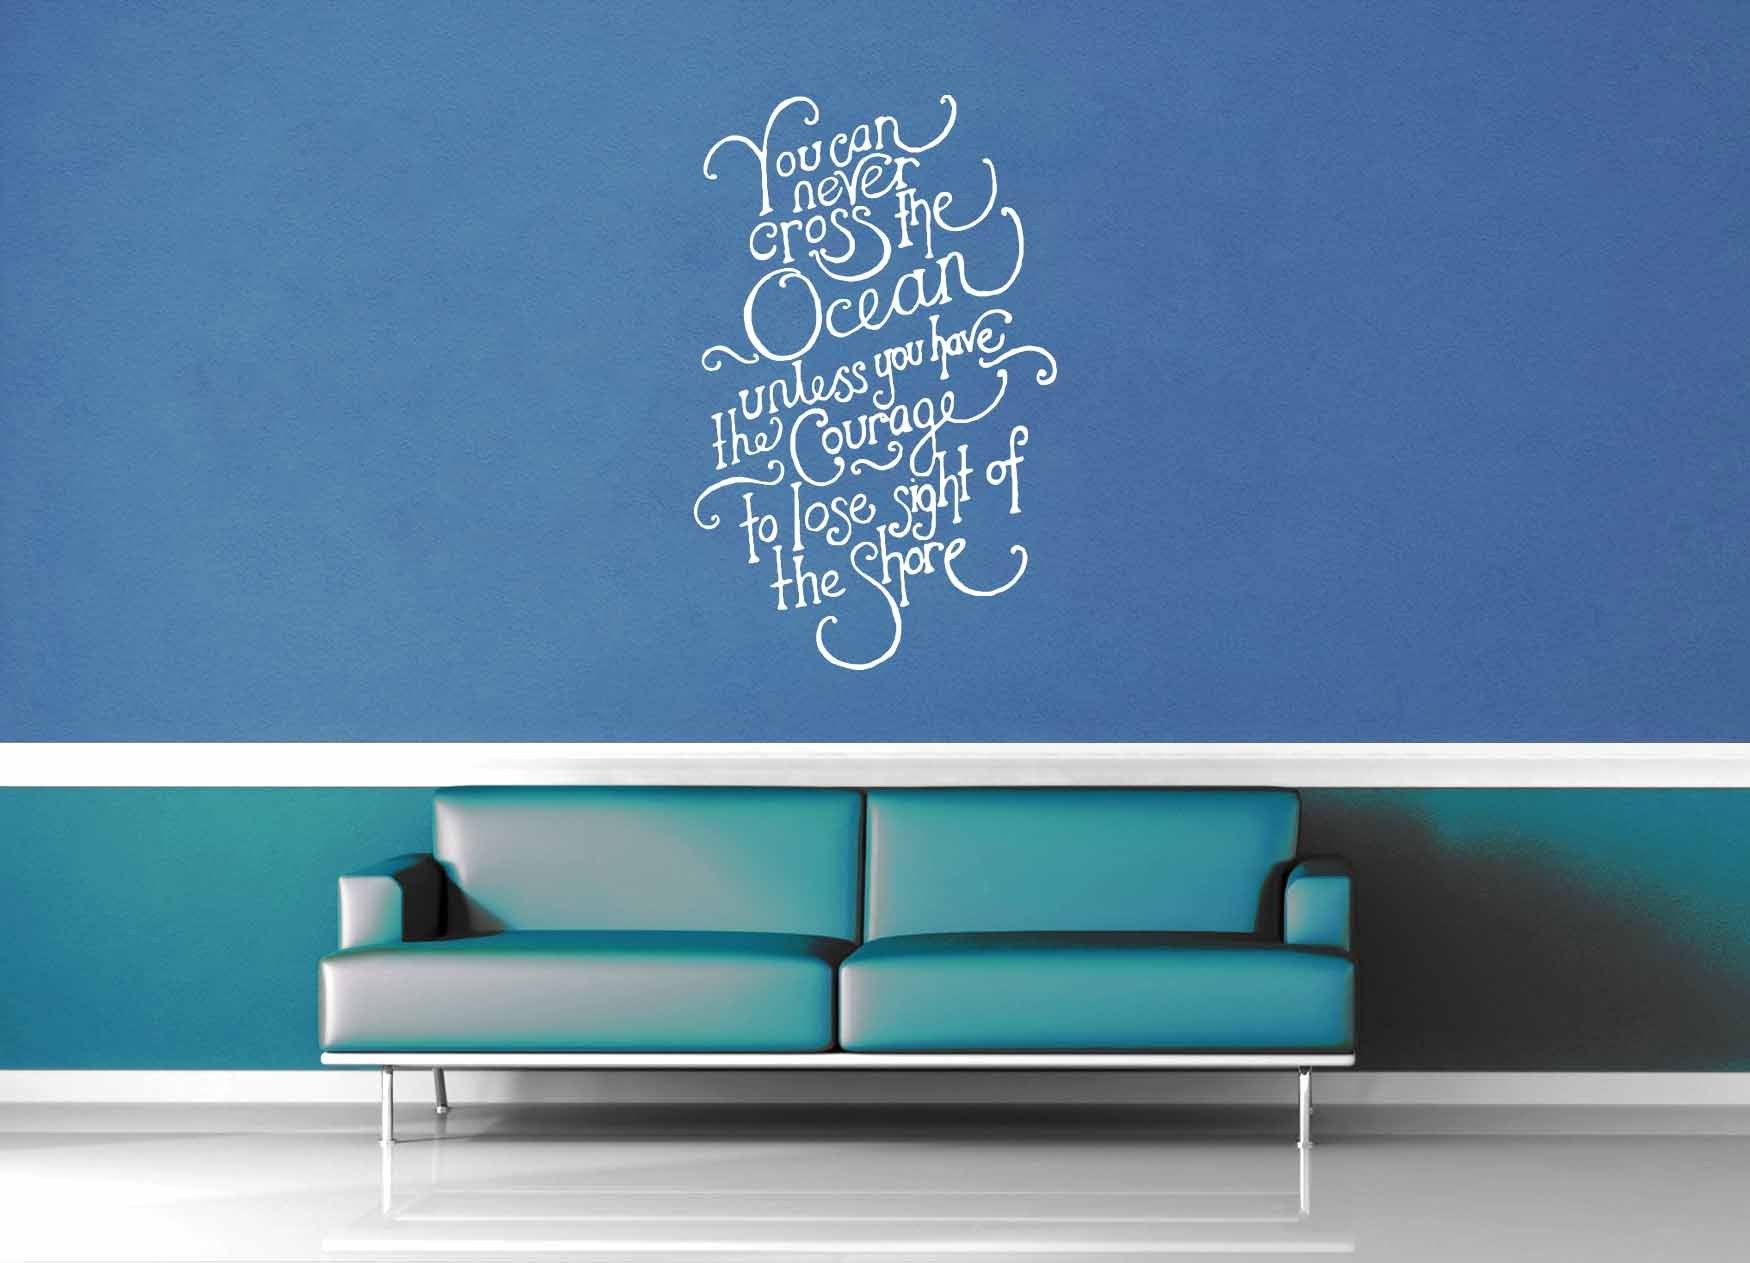 Cross the Ocean - Inspirational Quote - Wall Decal